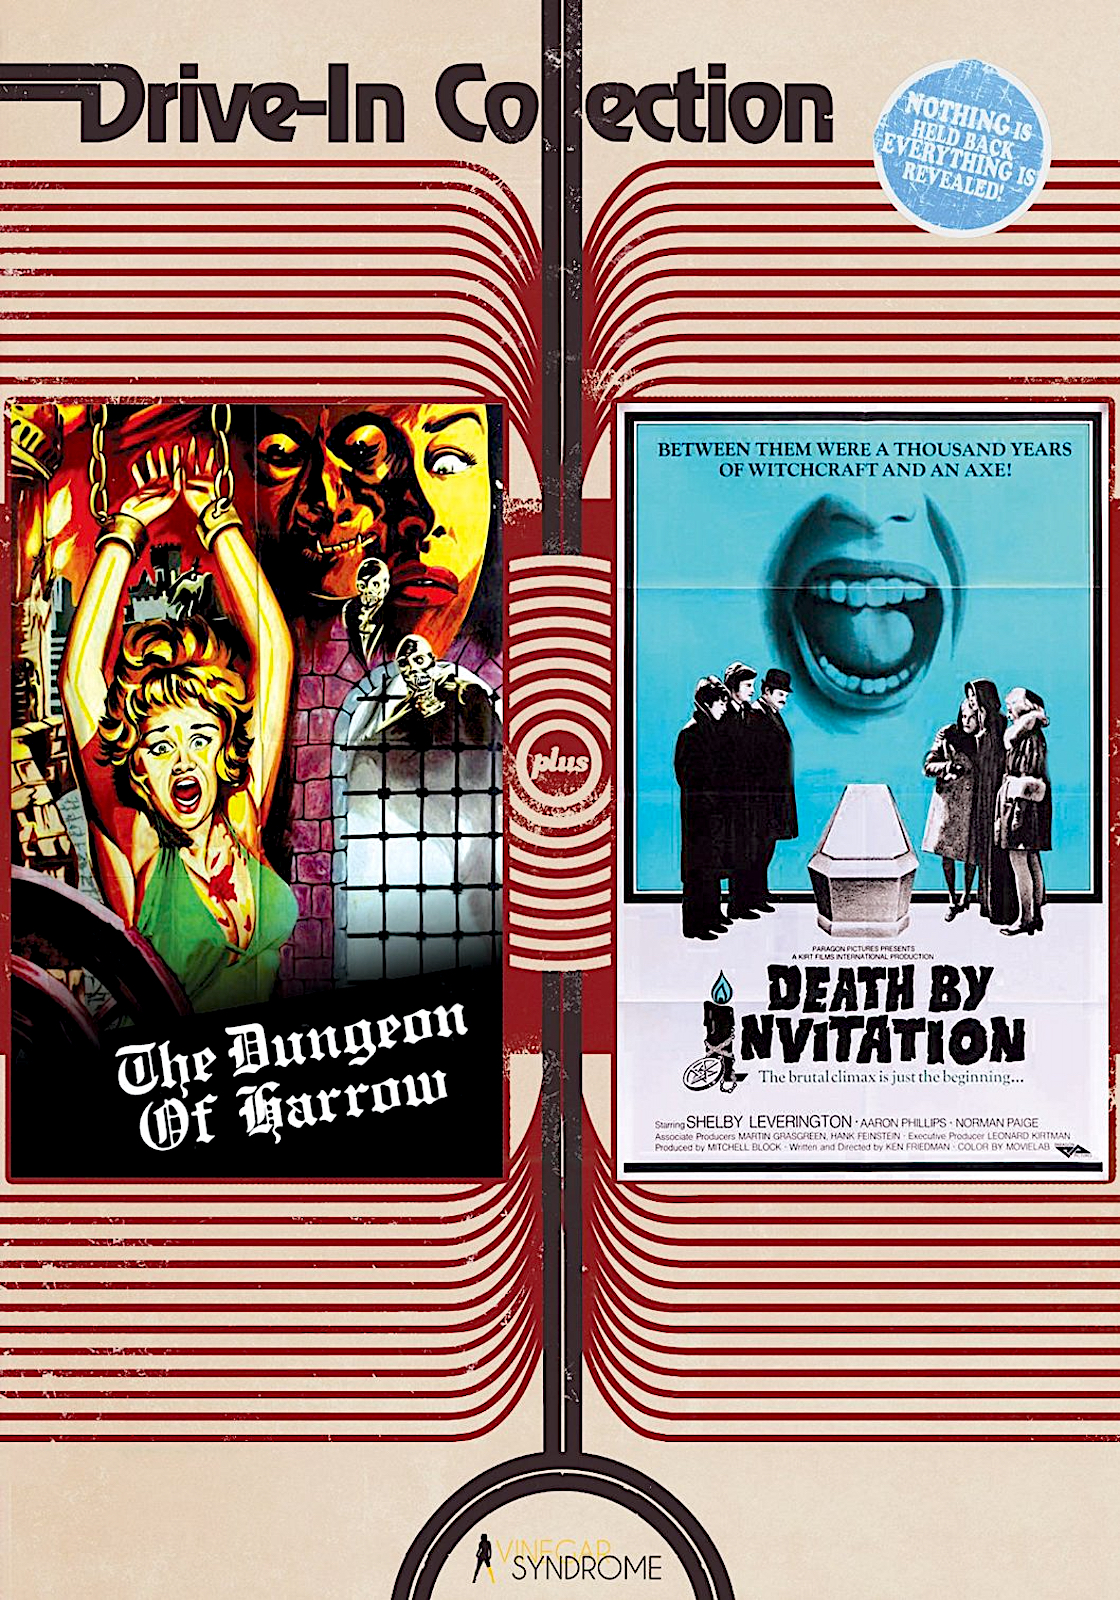 22 VINEGAR SYNDROME DRIVE-IN COLLECTION DVDS ideas